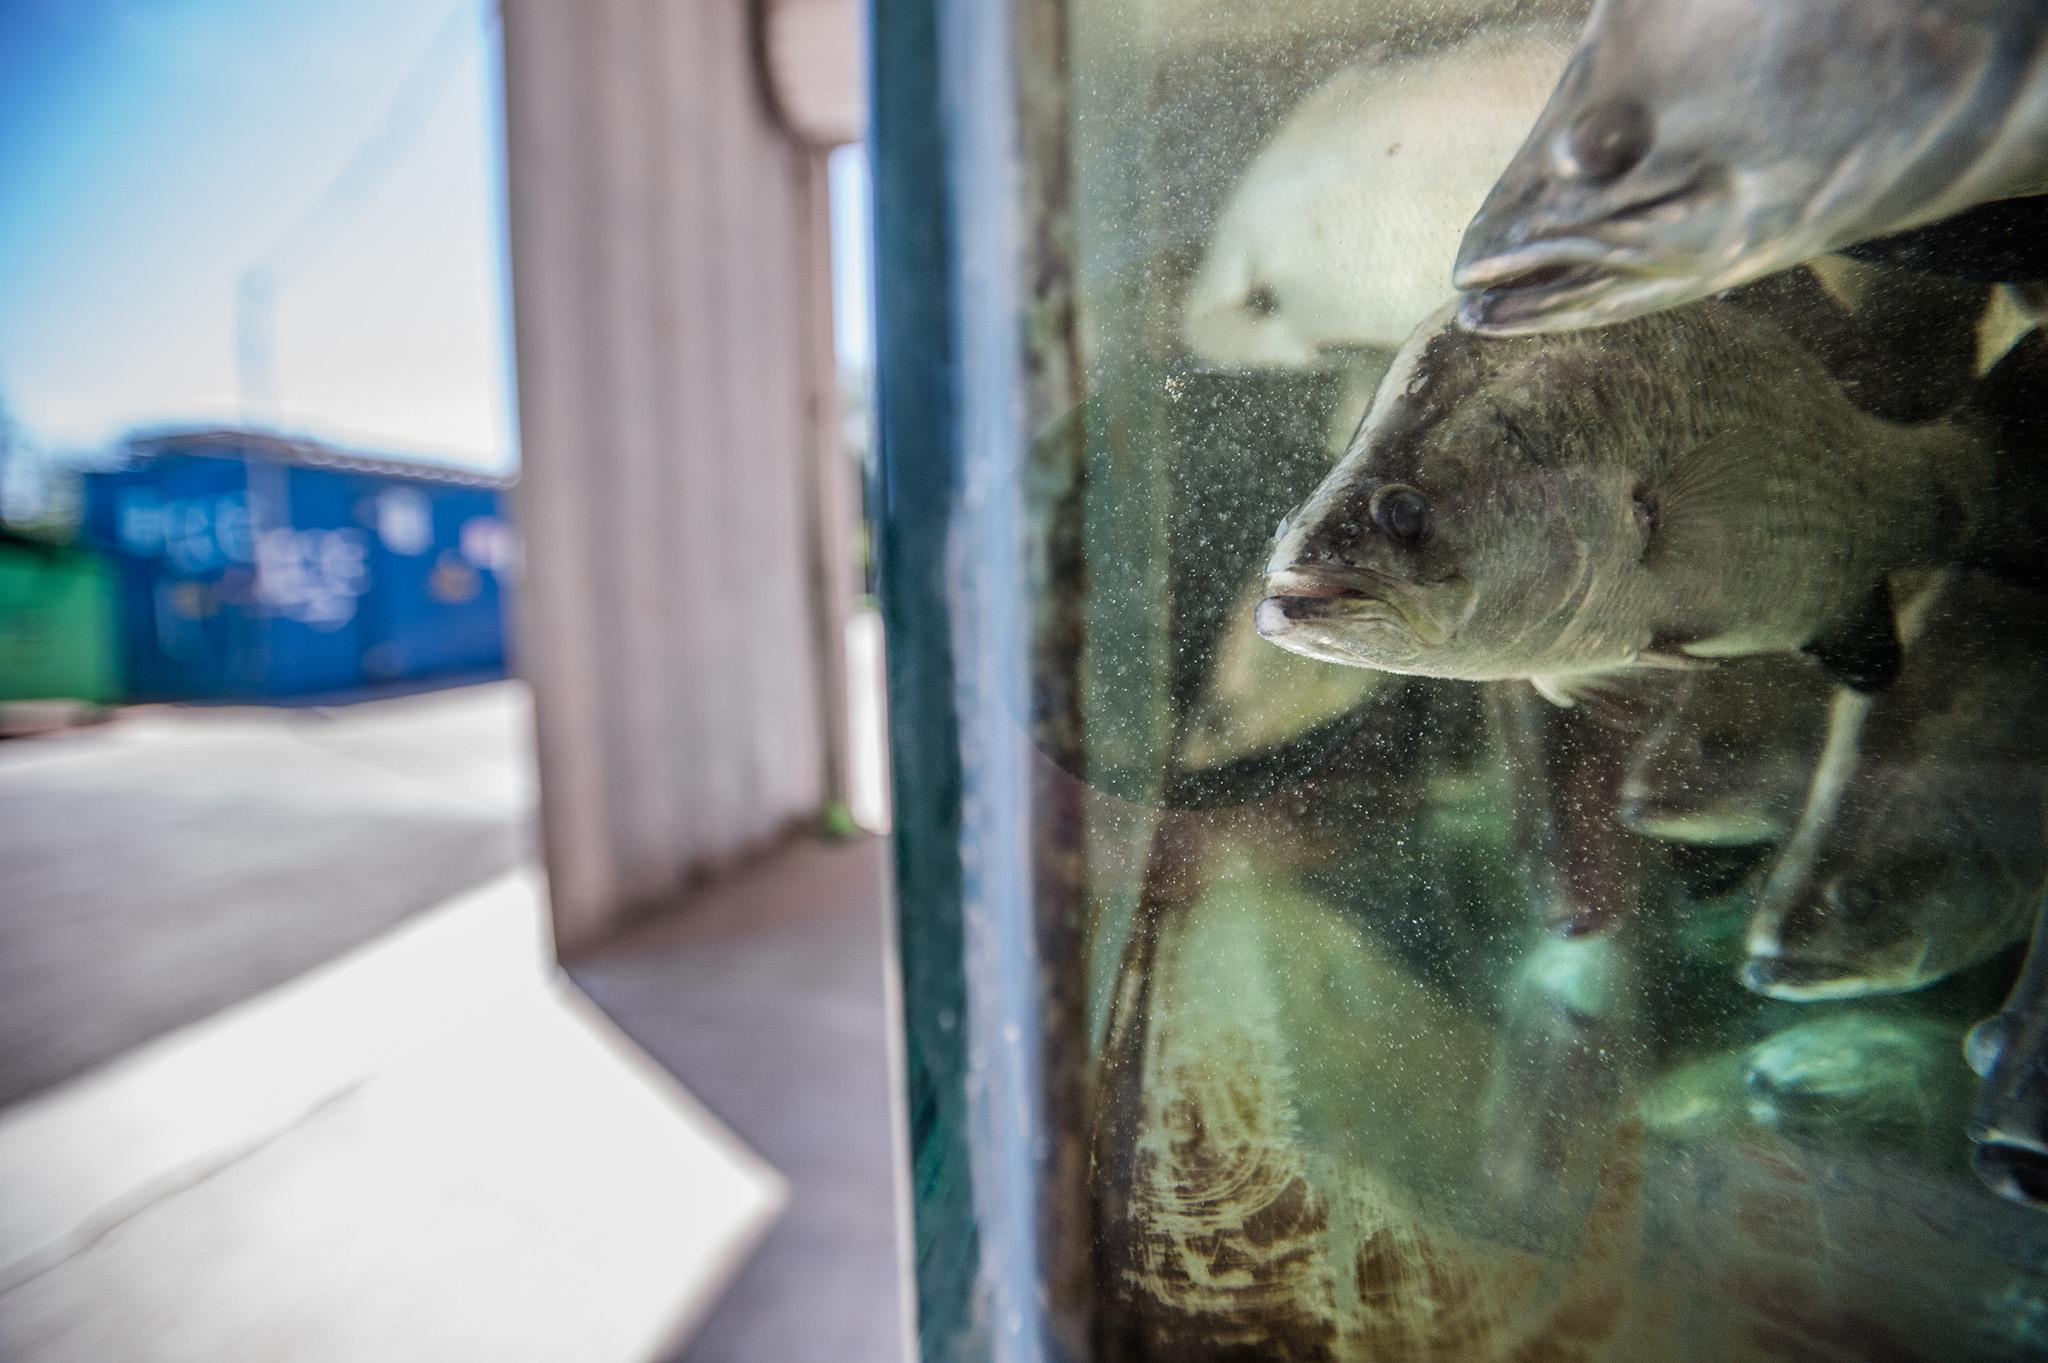 Salmon farms in UK 'at serious risk' after closures due to